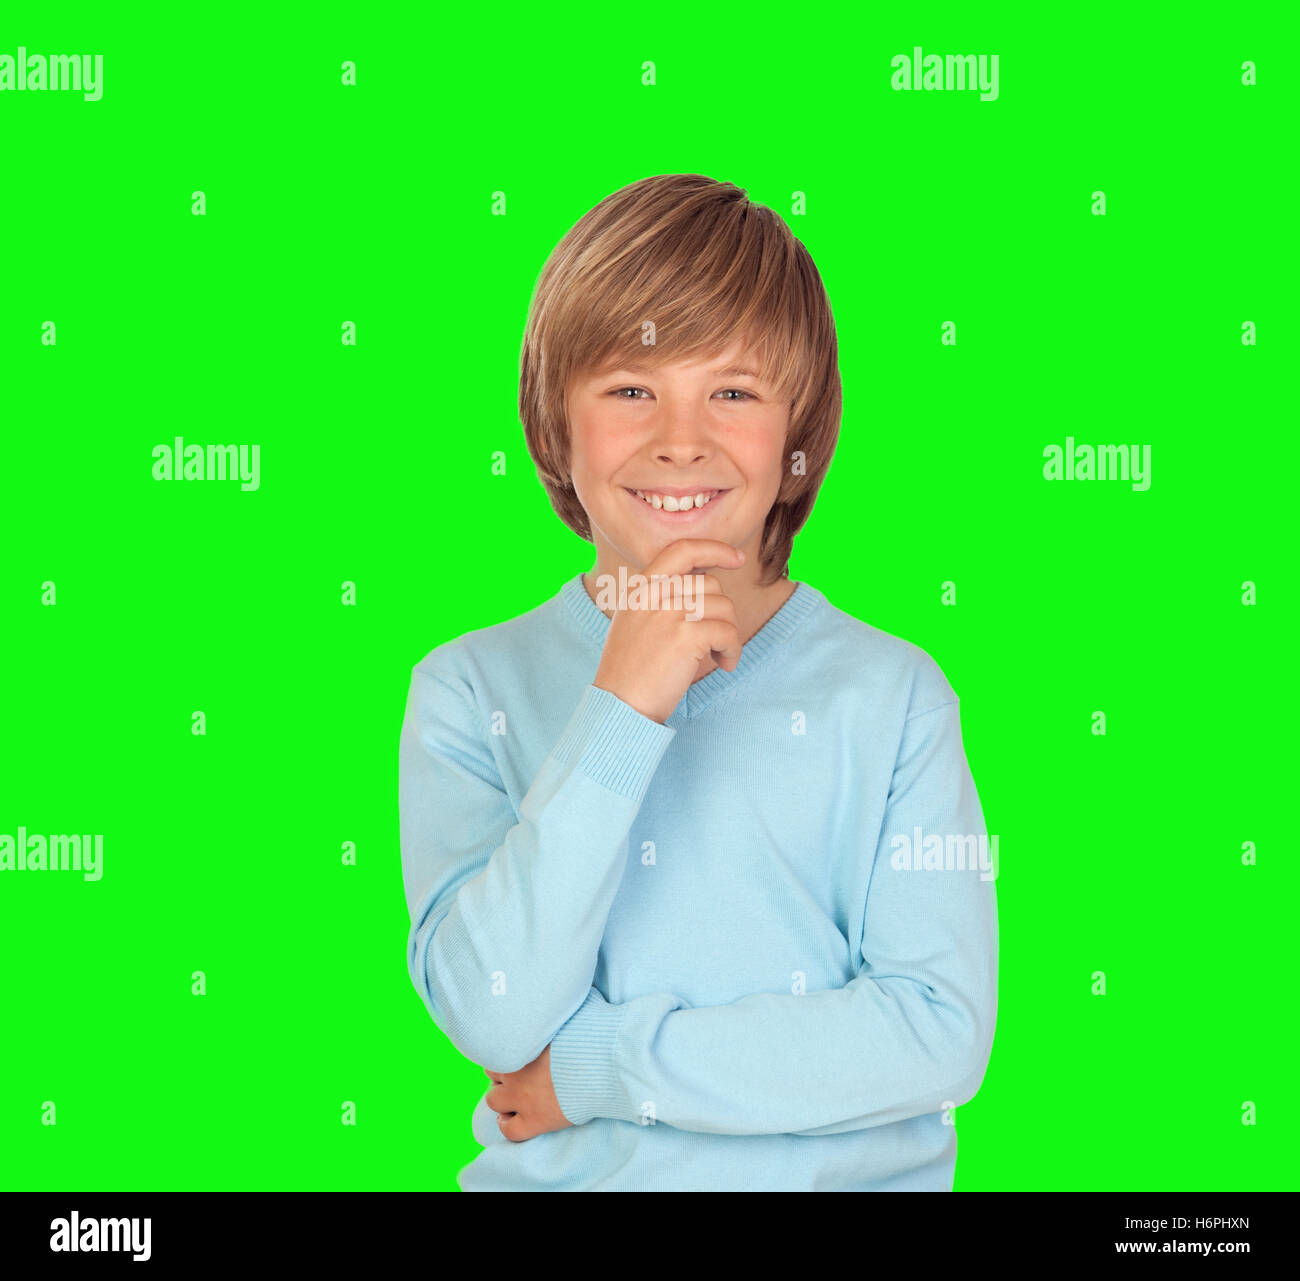 Pensive preteen boy isolated on a over green background - Stock Image